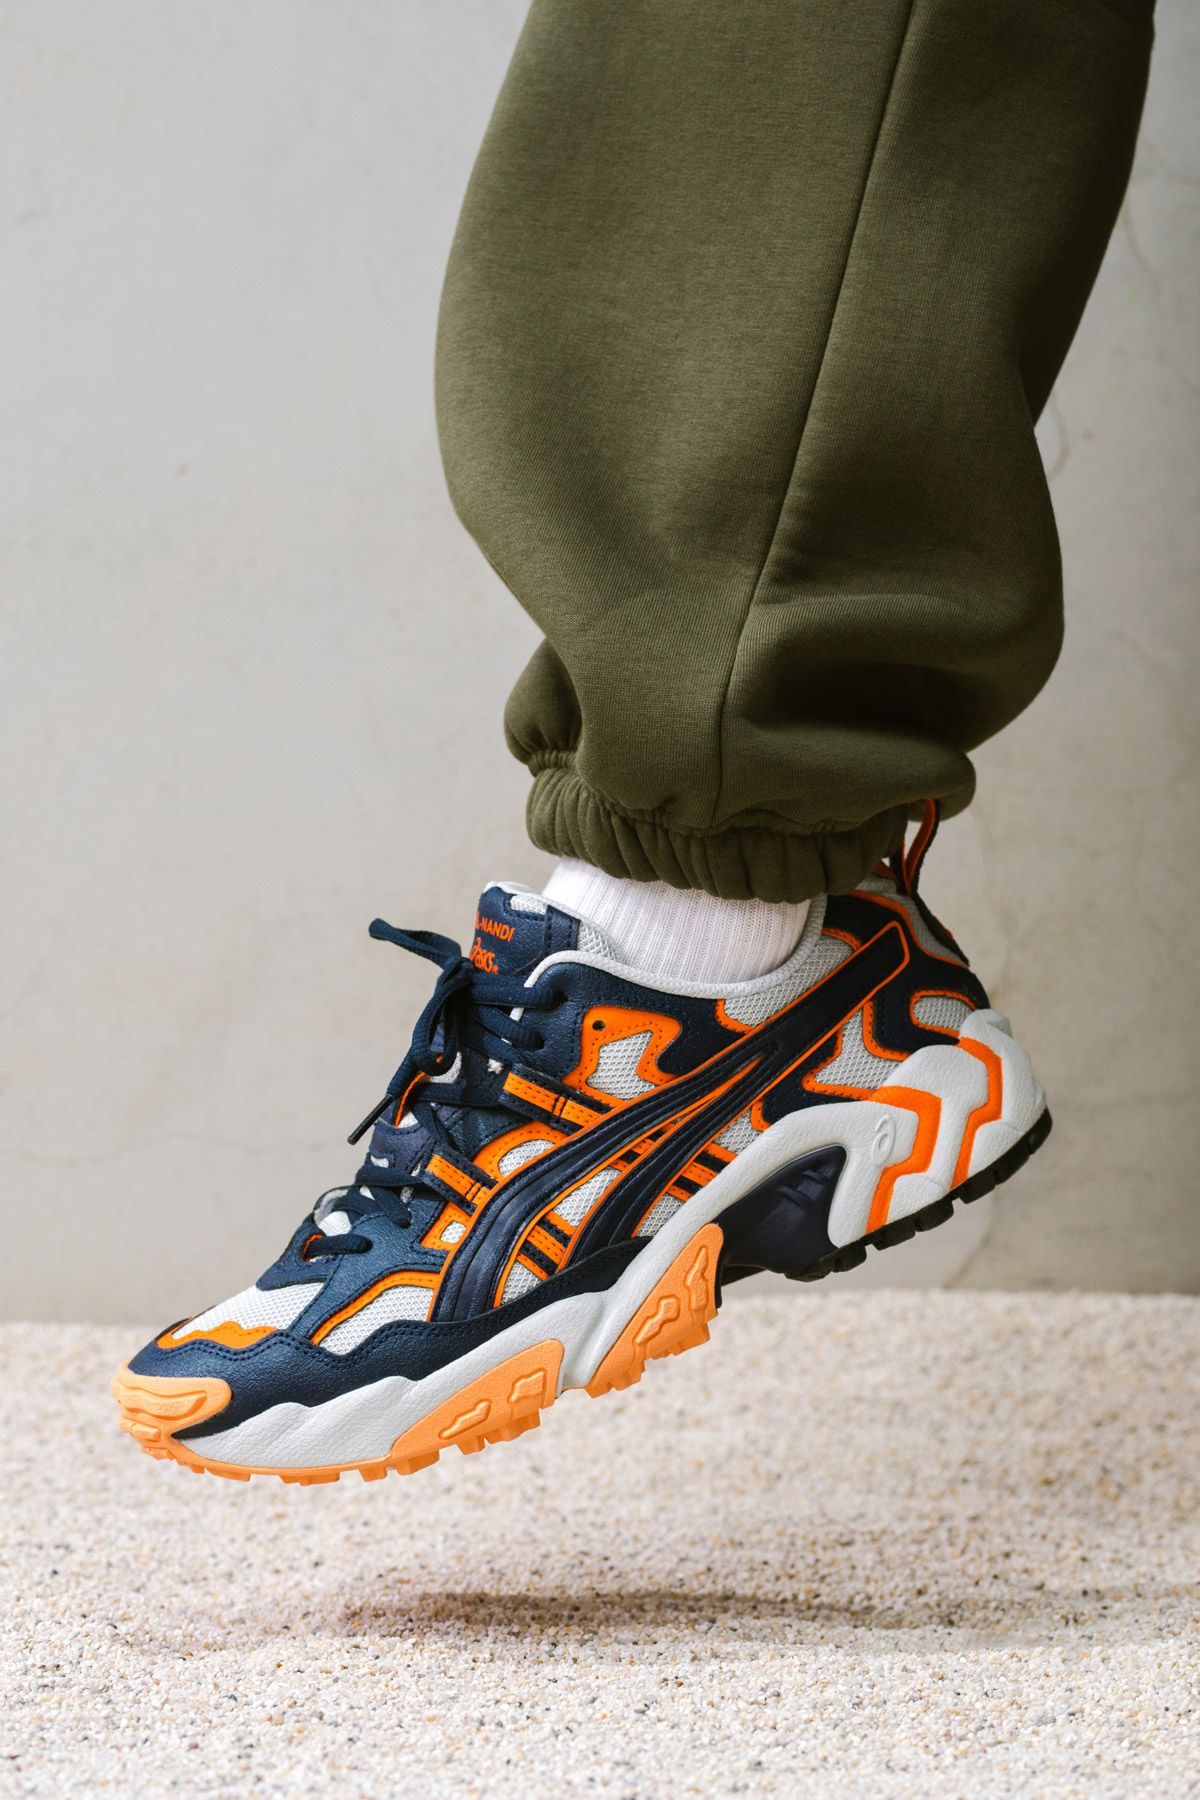 ASICS Relauches the GEL-NANDI For the First Time Since 2000 12